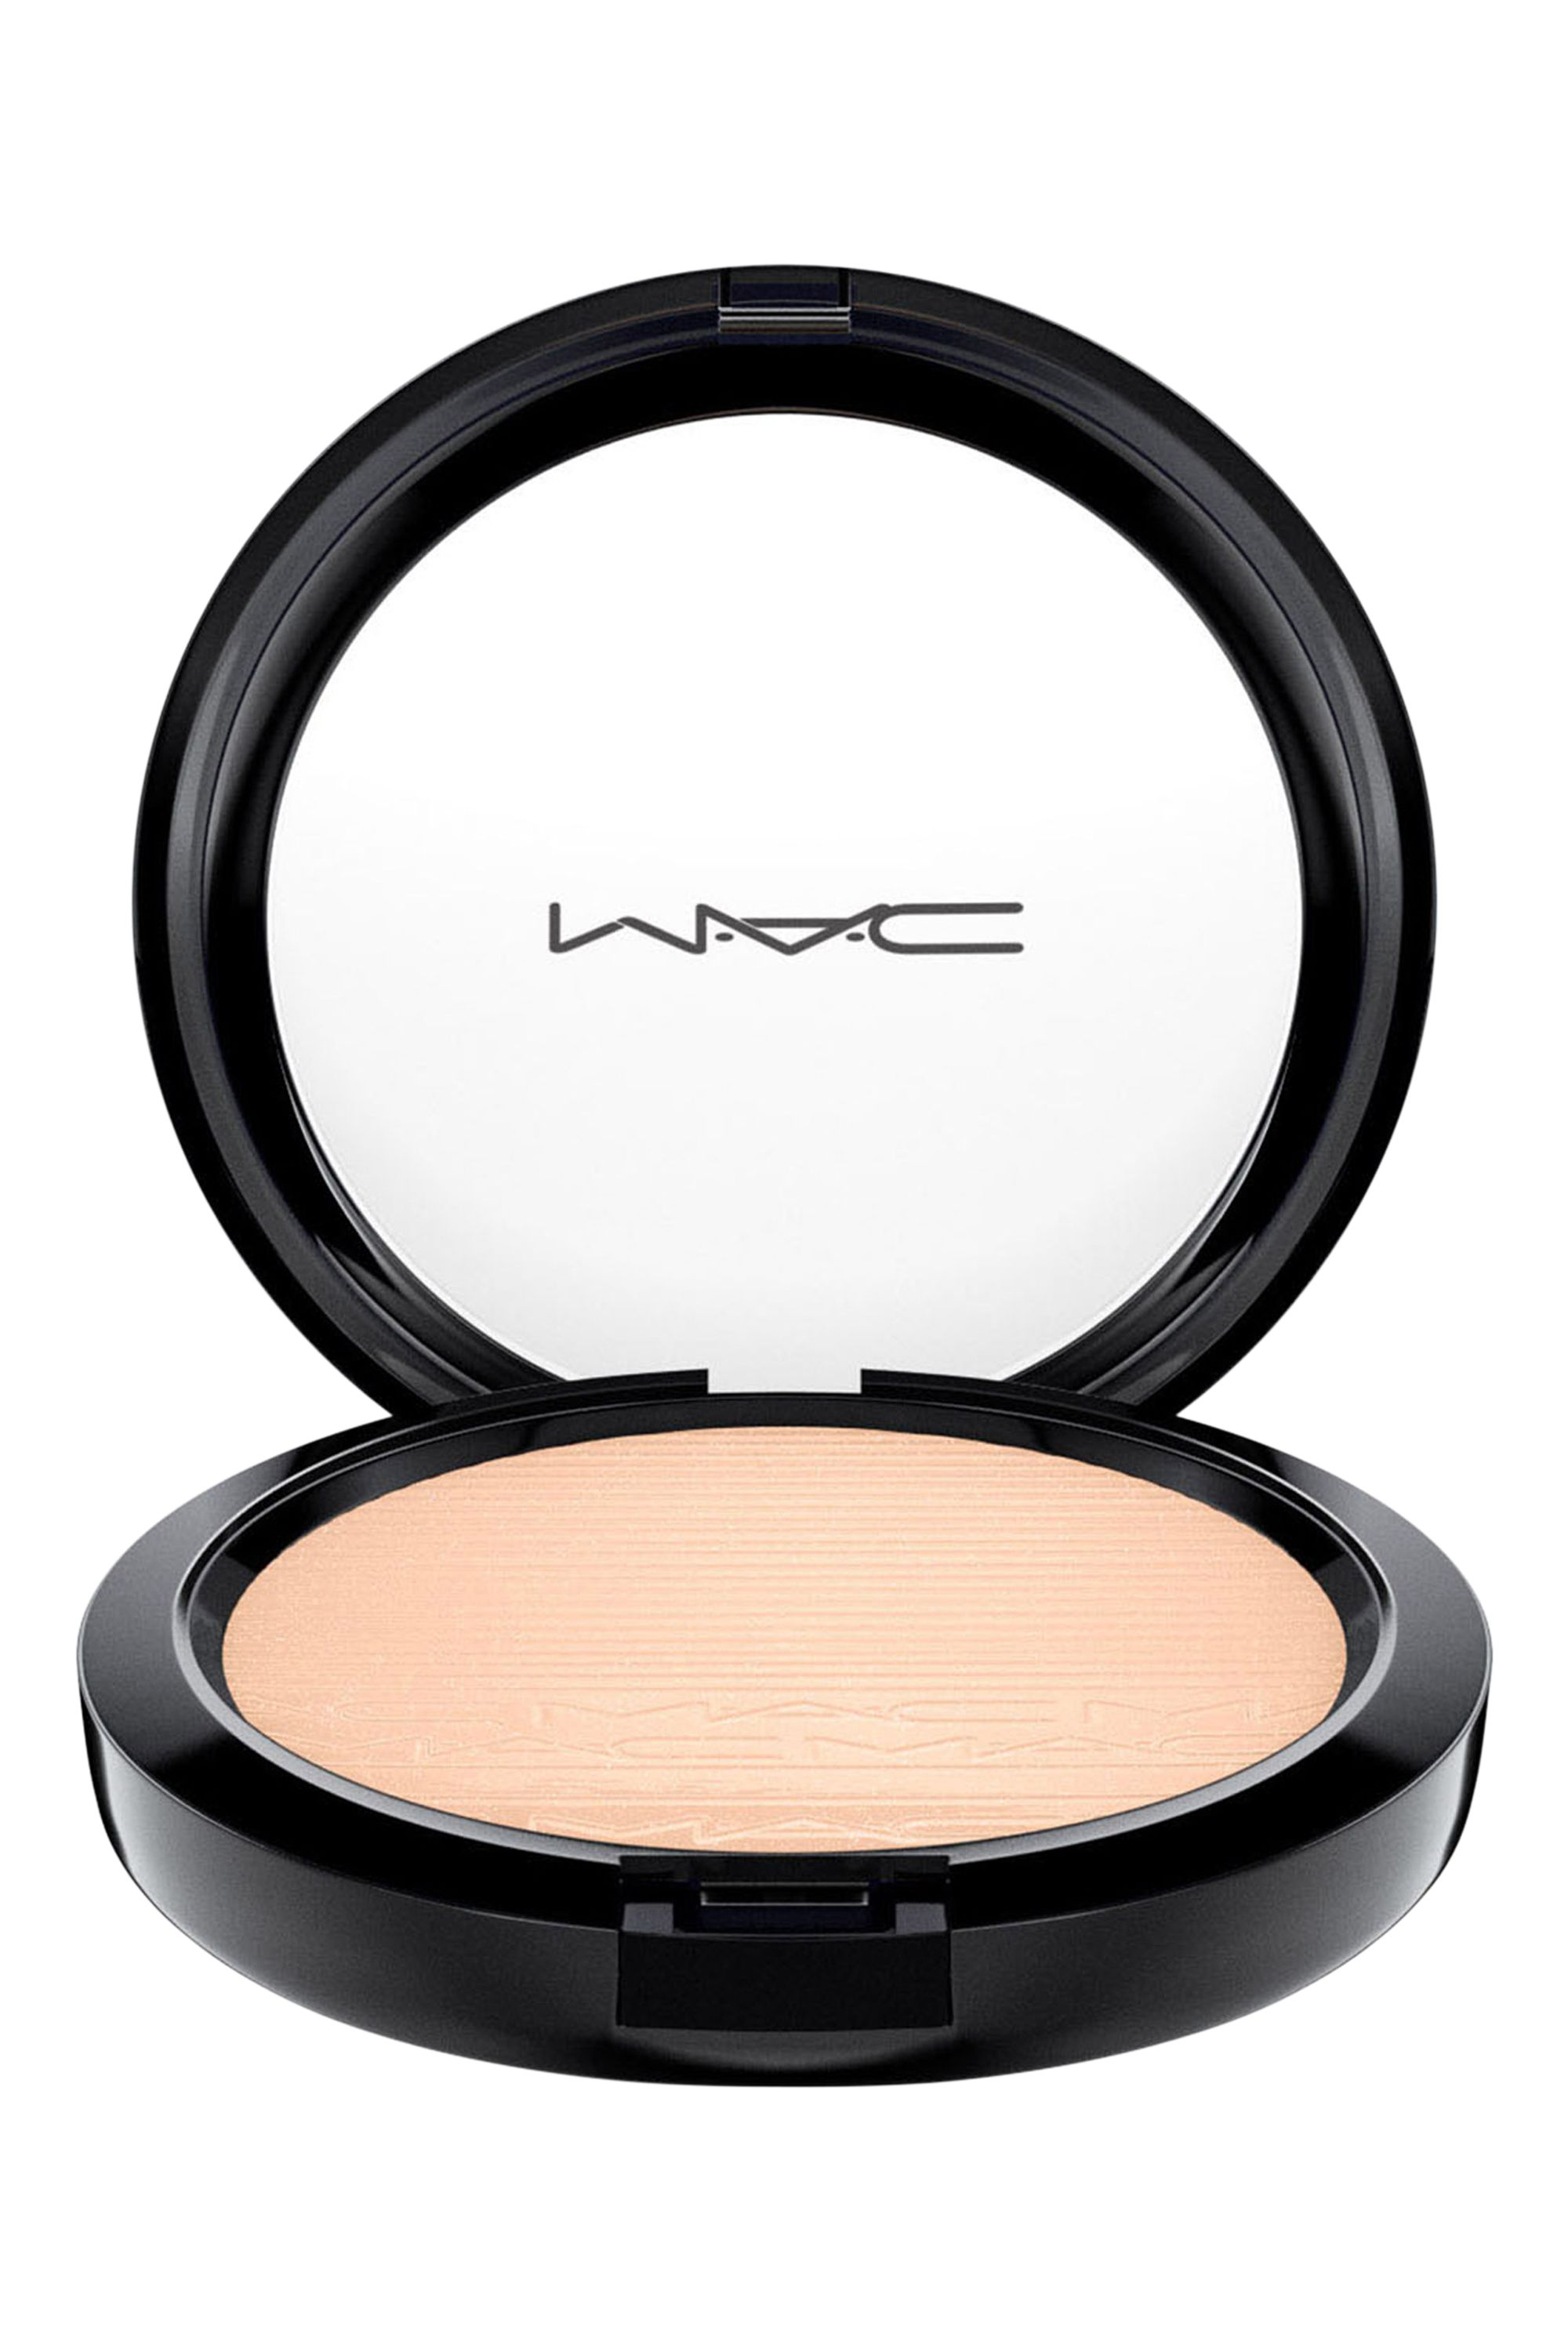 Blissim : M.A.C - Poudre Highlighter Extra Dimension Double Gleam - Poudre Highlighter Extra Dimension Double Gleam